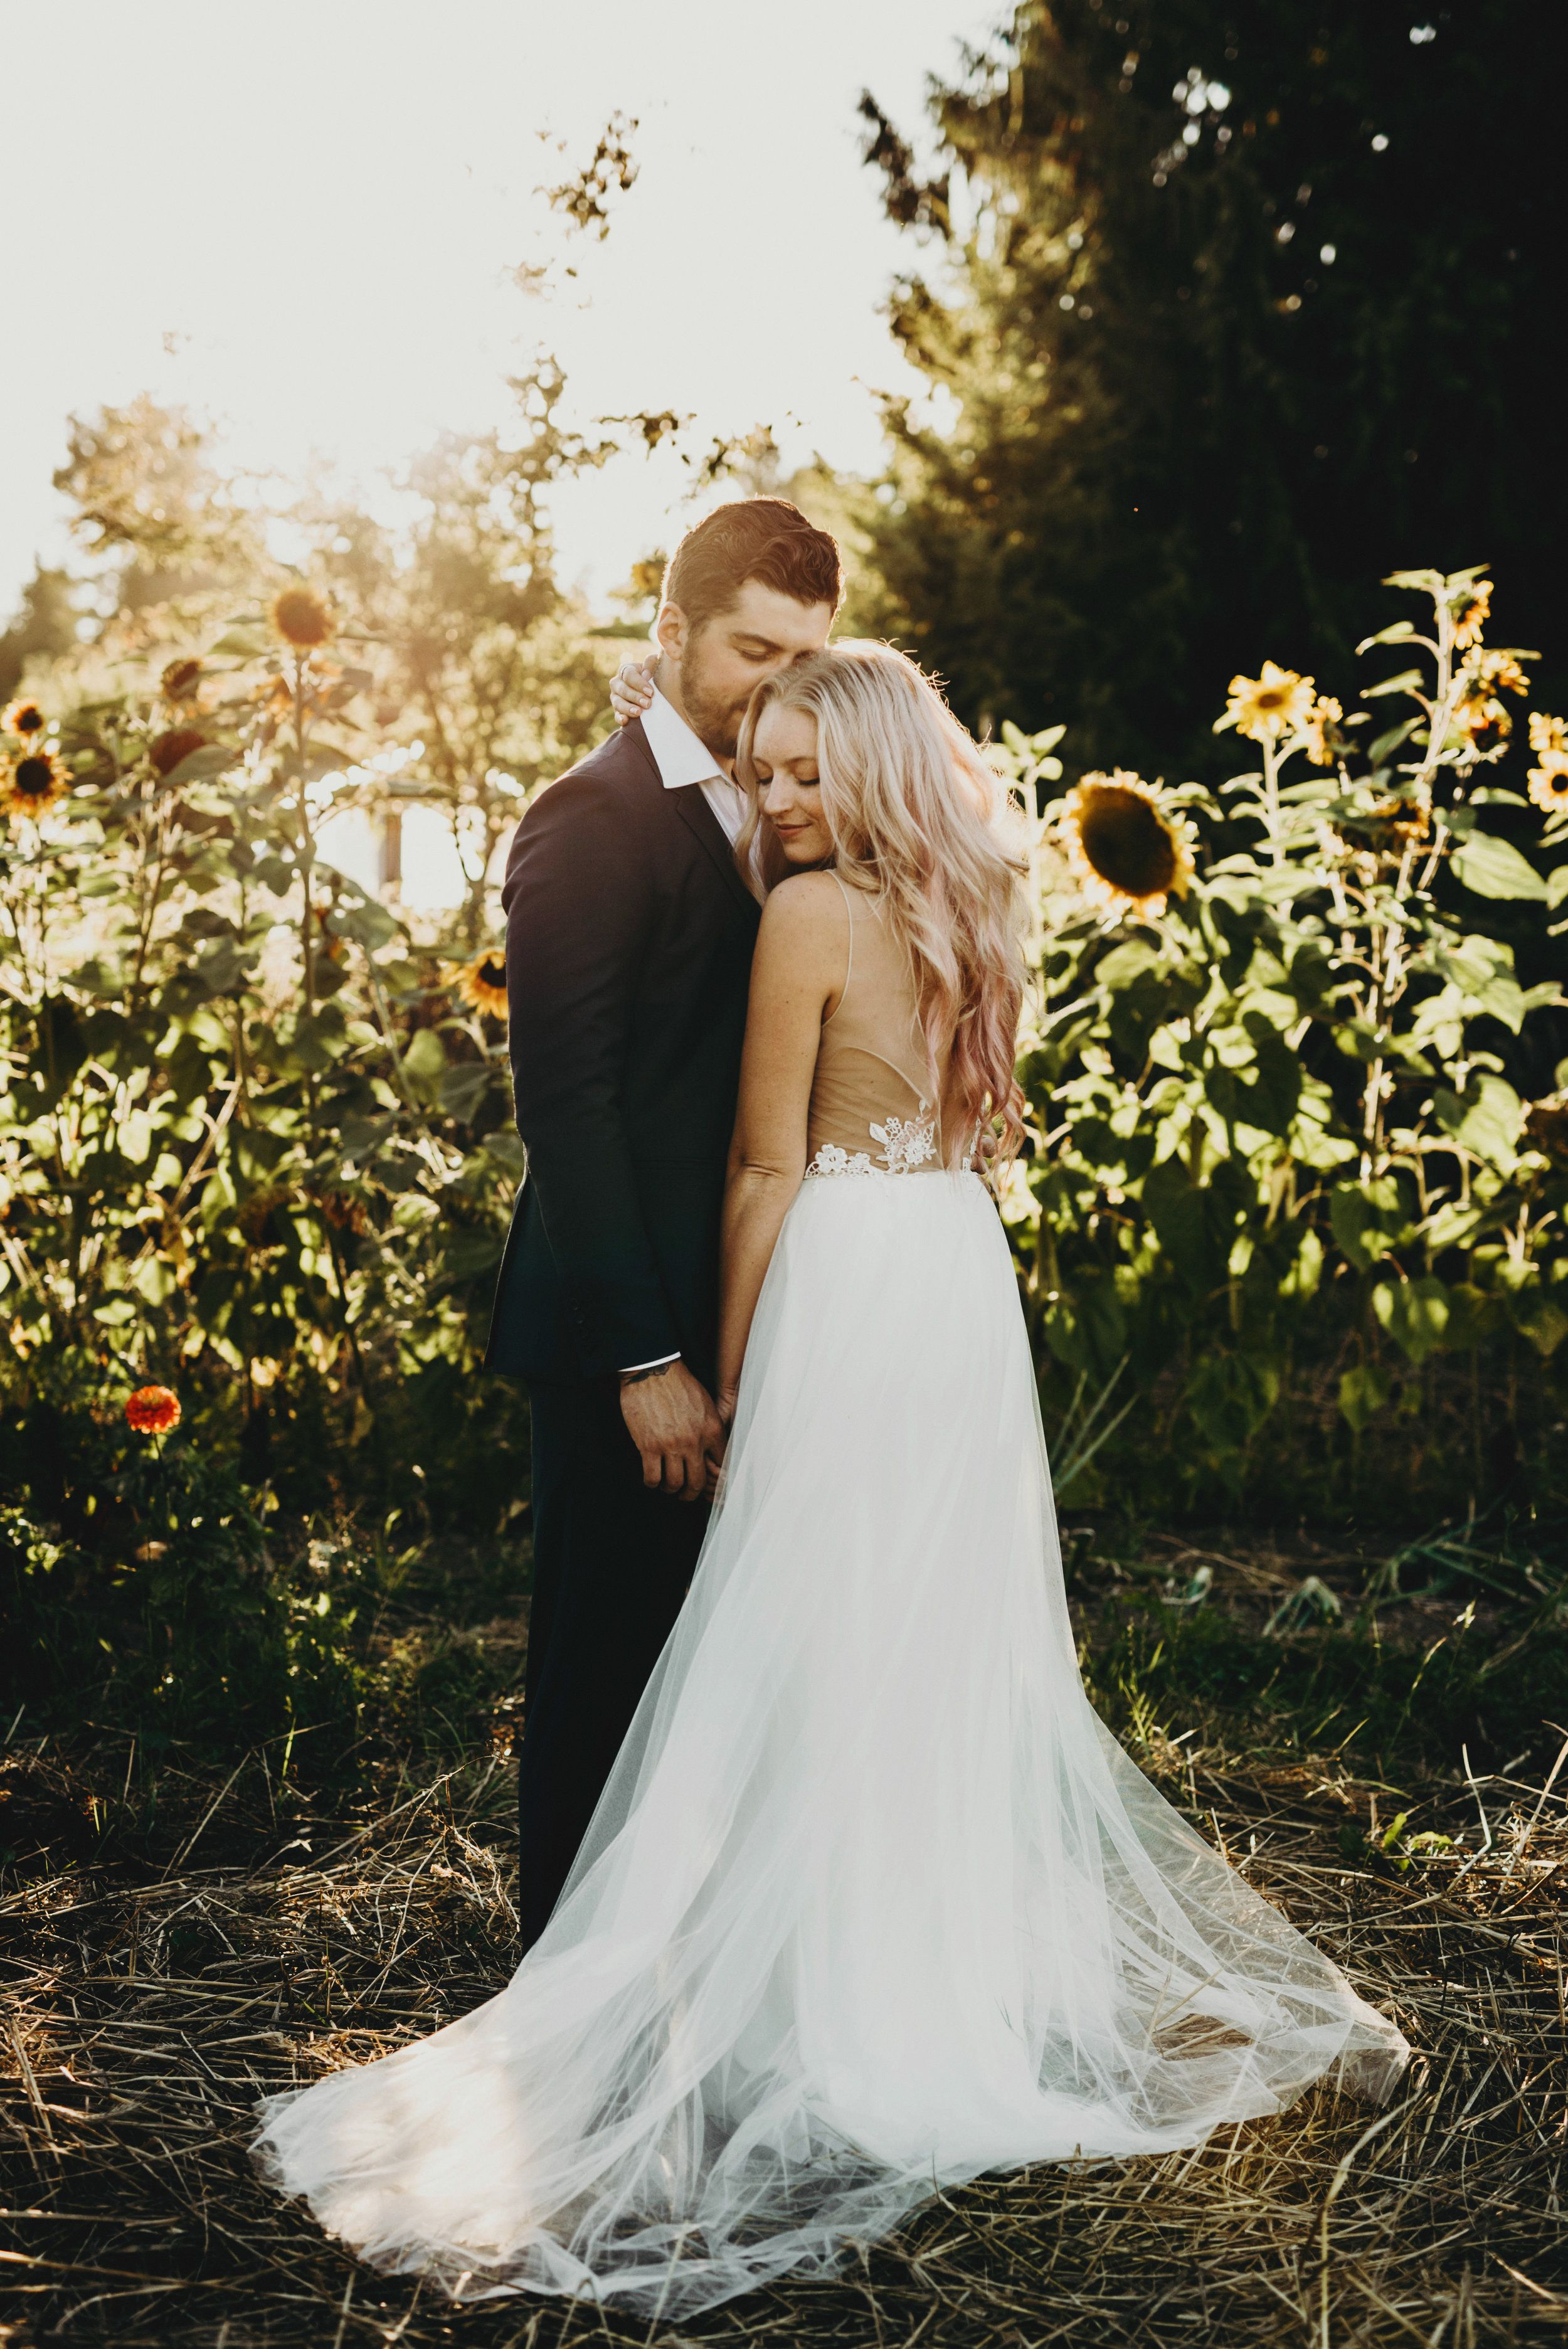 Romantic Farmhouse Orchard Bridal Inspo Alexandra Grecco Hayley Paige A Be Bridal Shop Styled Wedding Shooting Wedding Dresses Whimsical Bridal Styled Shoot,Beach Wedding Dresses Australia Online